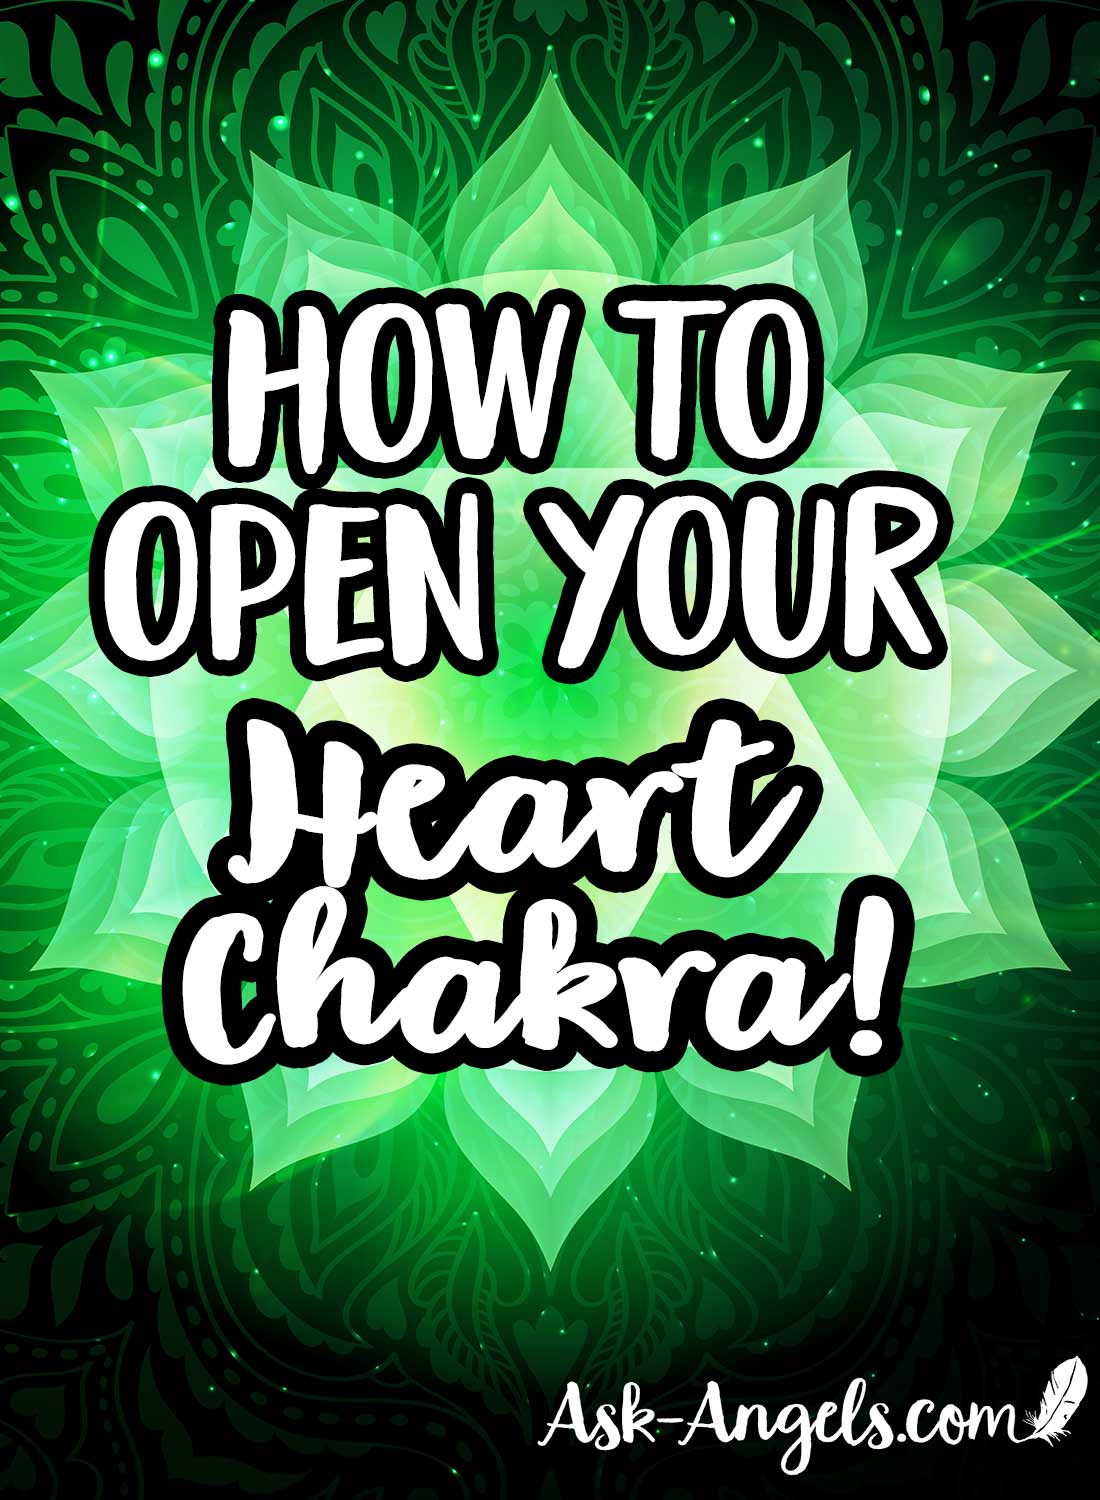 Heart Chakra Opening - How to Open Your Heart